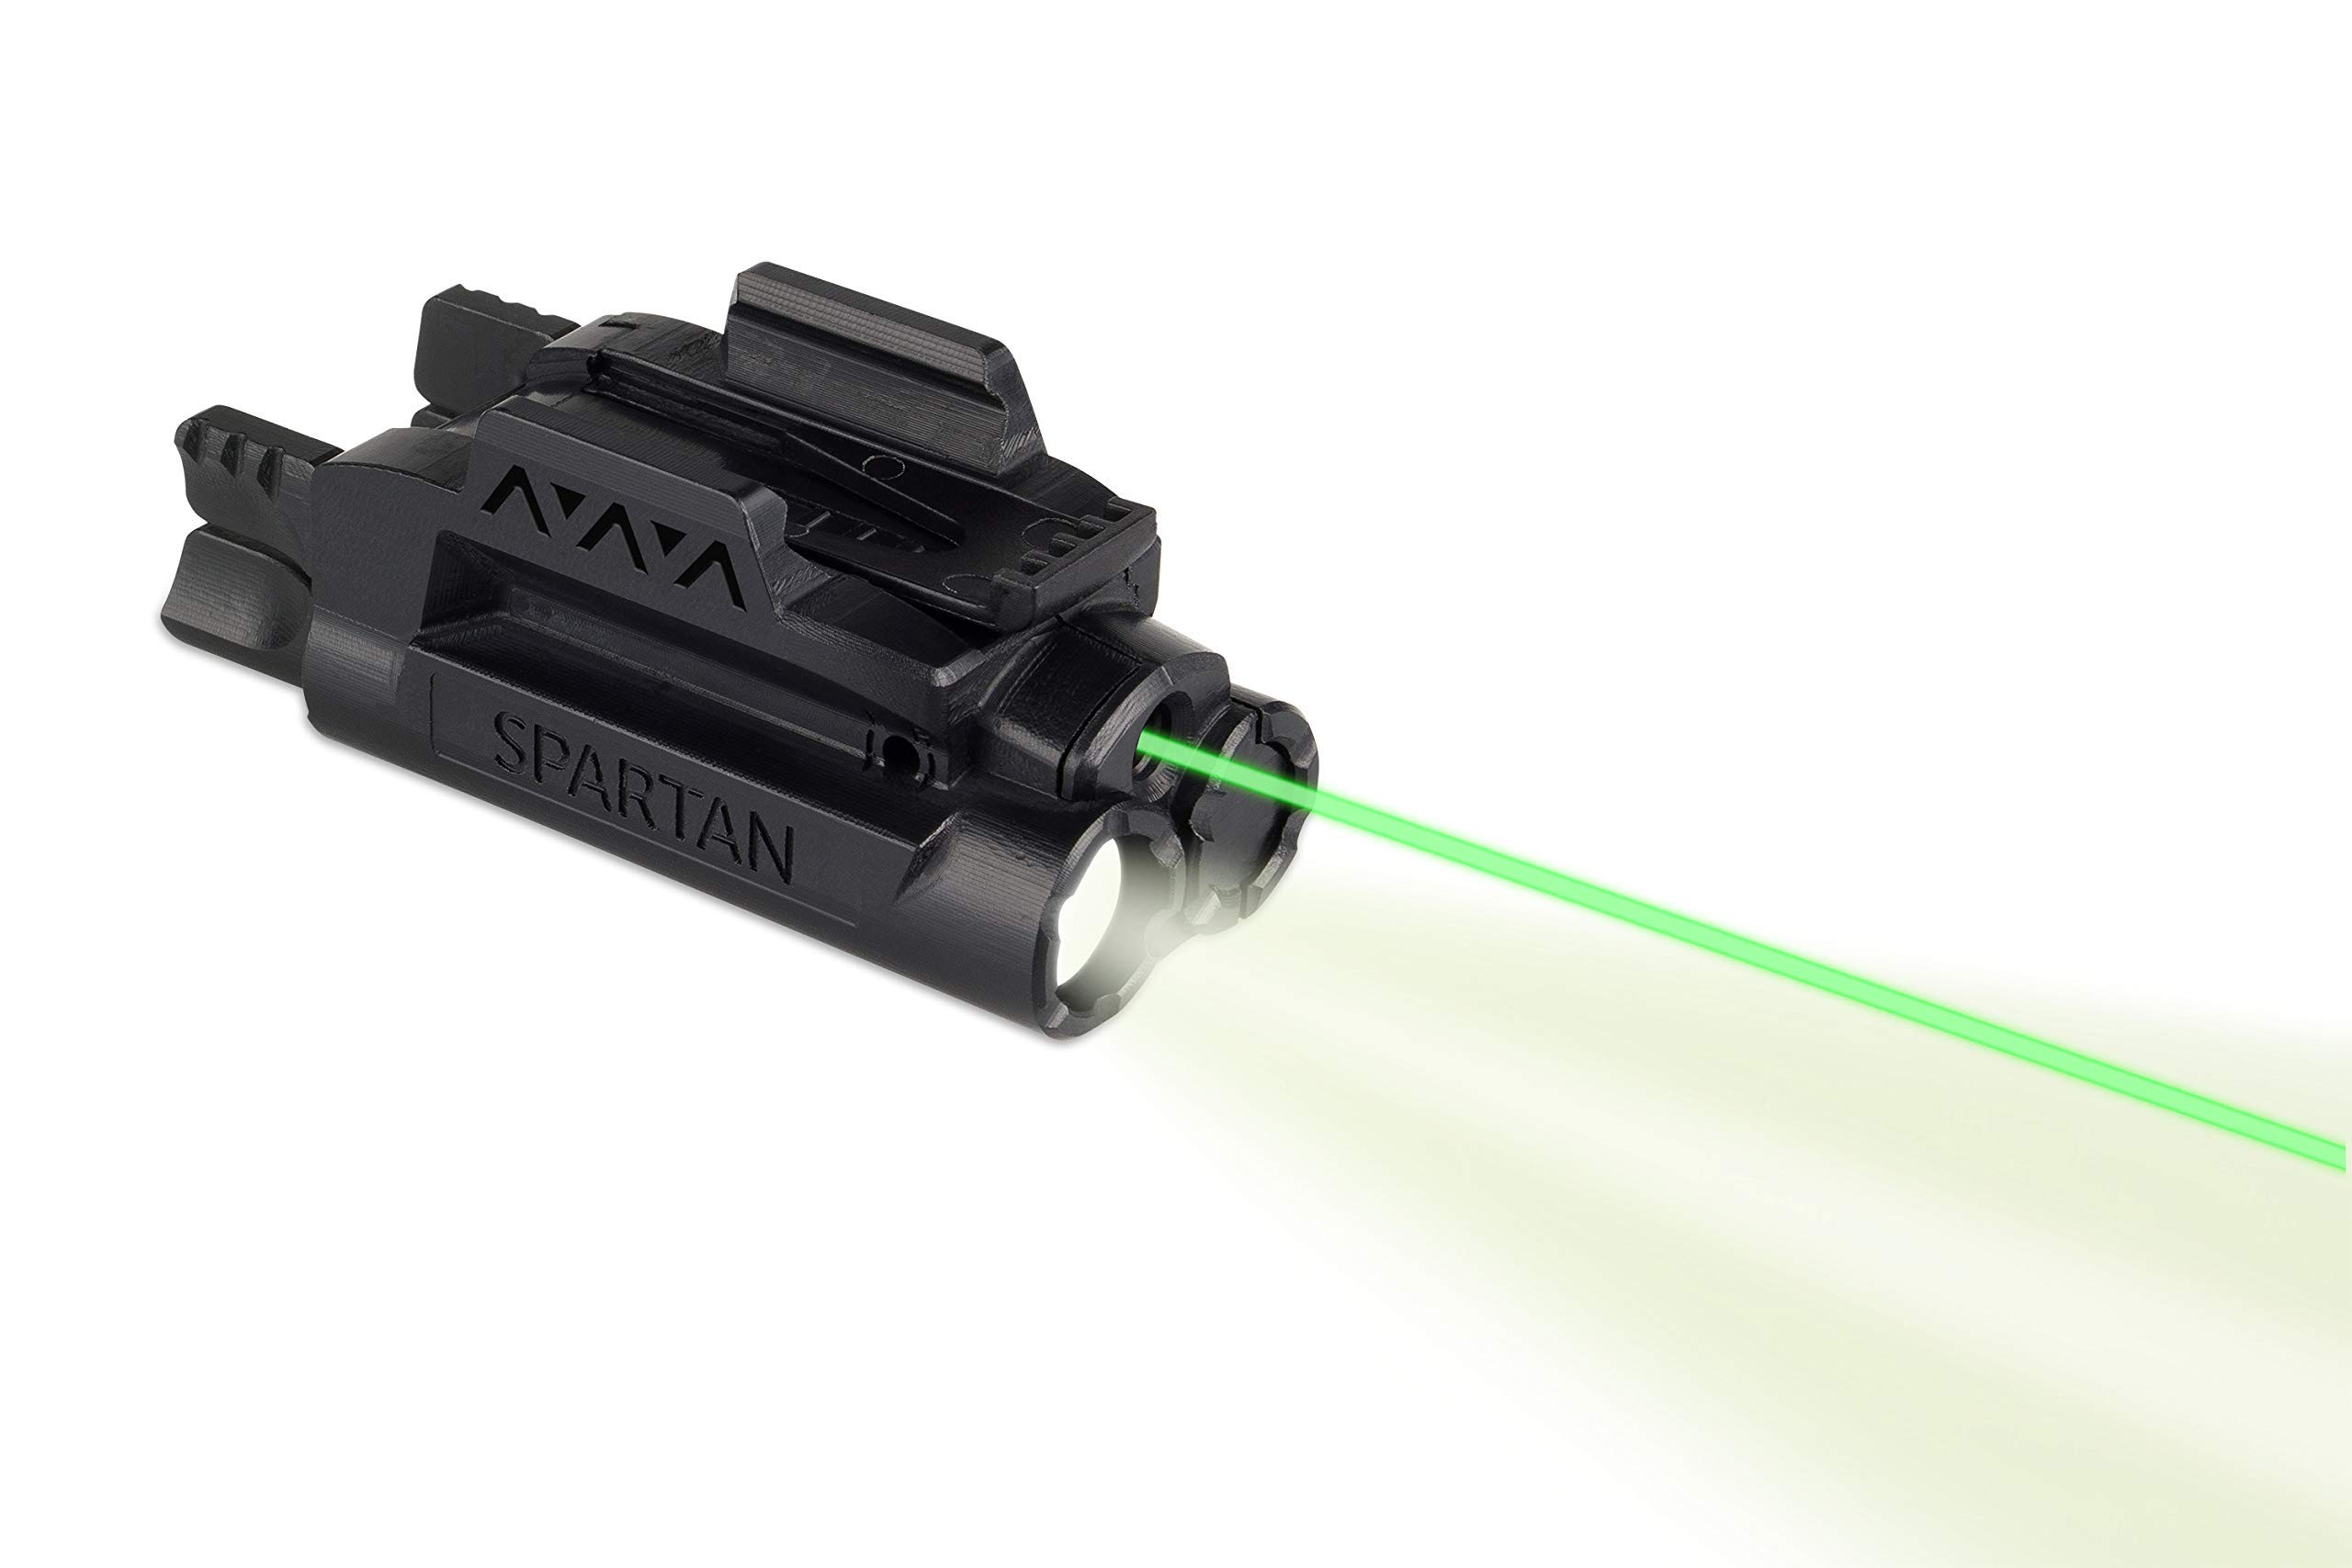 LaserMax Spartan Adjustable Rail Mounted Laser/Light Combo (Green) SPS-C-G by LaserMax